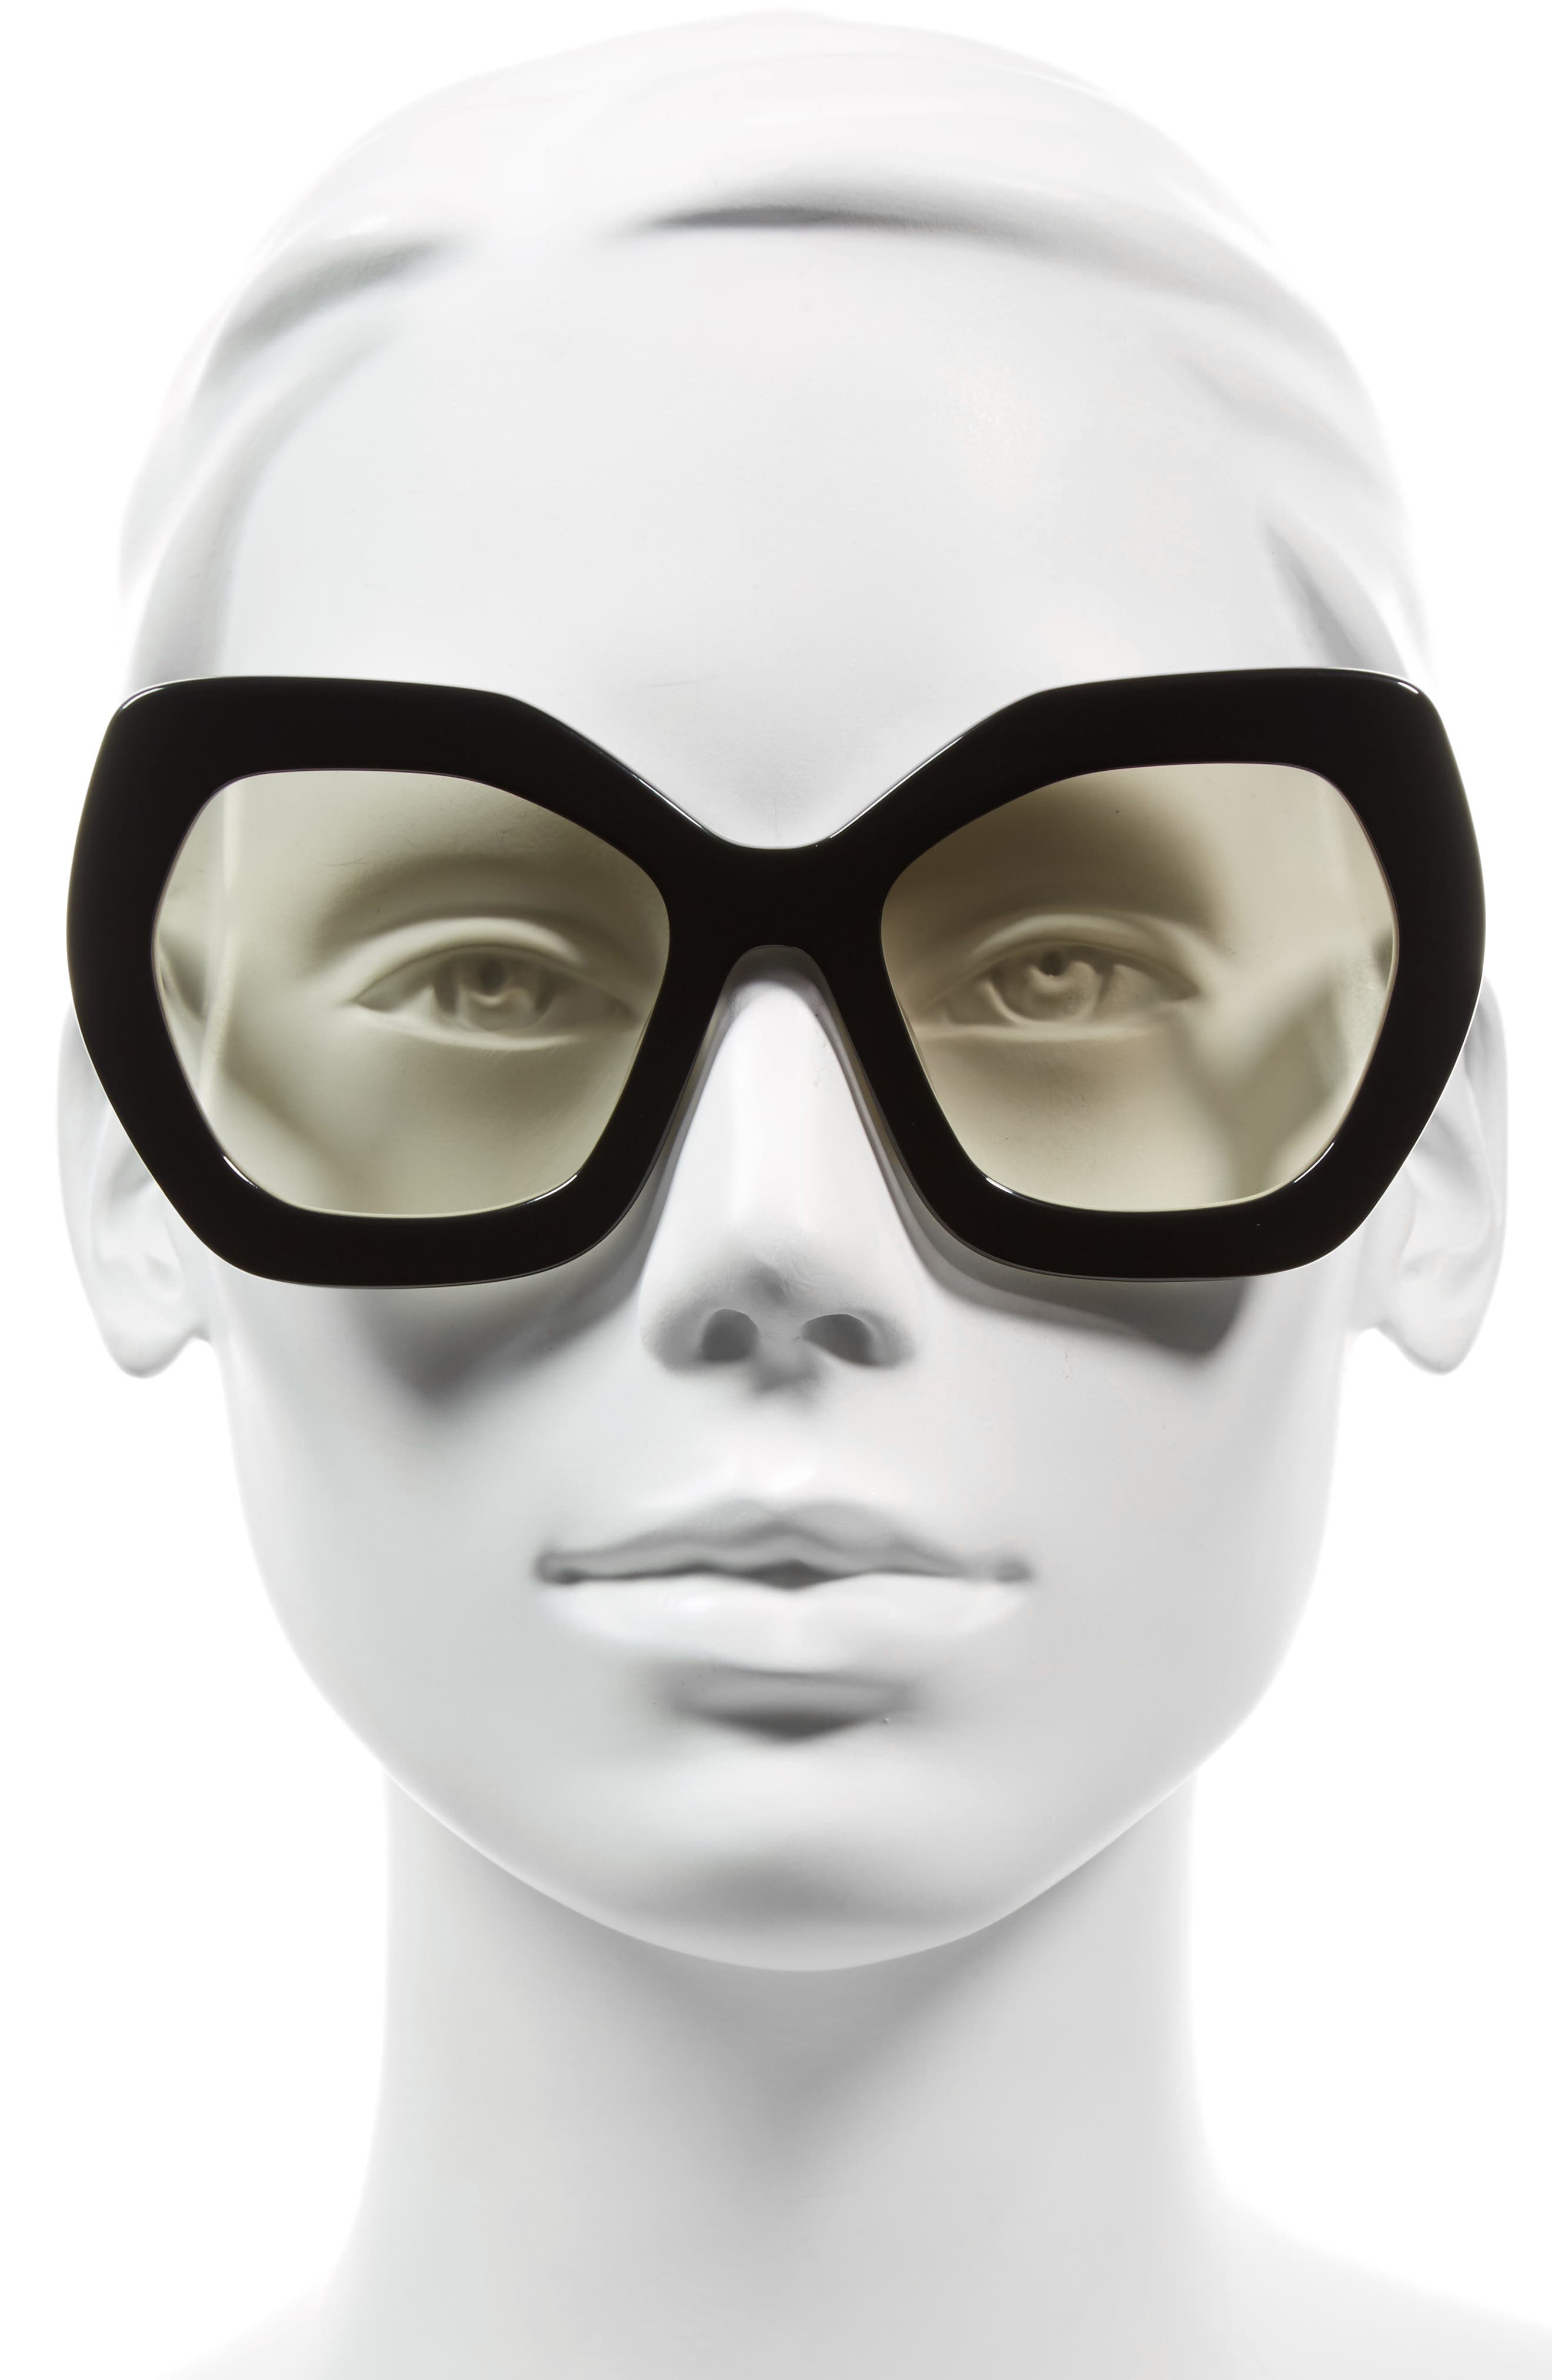 Dinah 55mm Butterfly Sunglasses,                             Alternate thumbnail 2, color,                             001